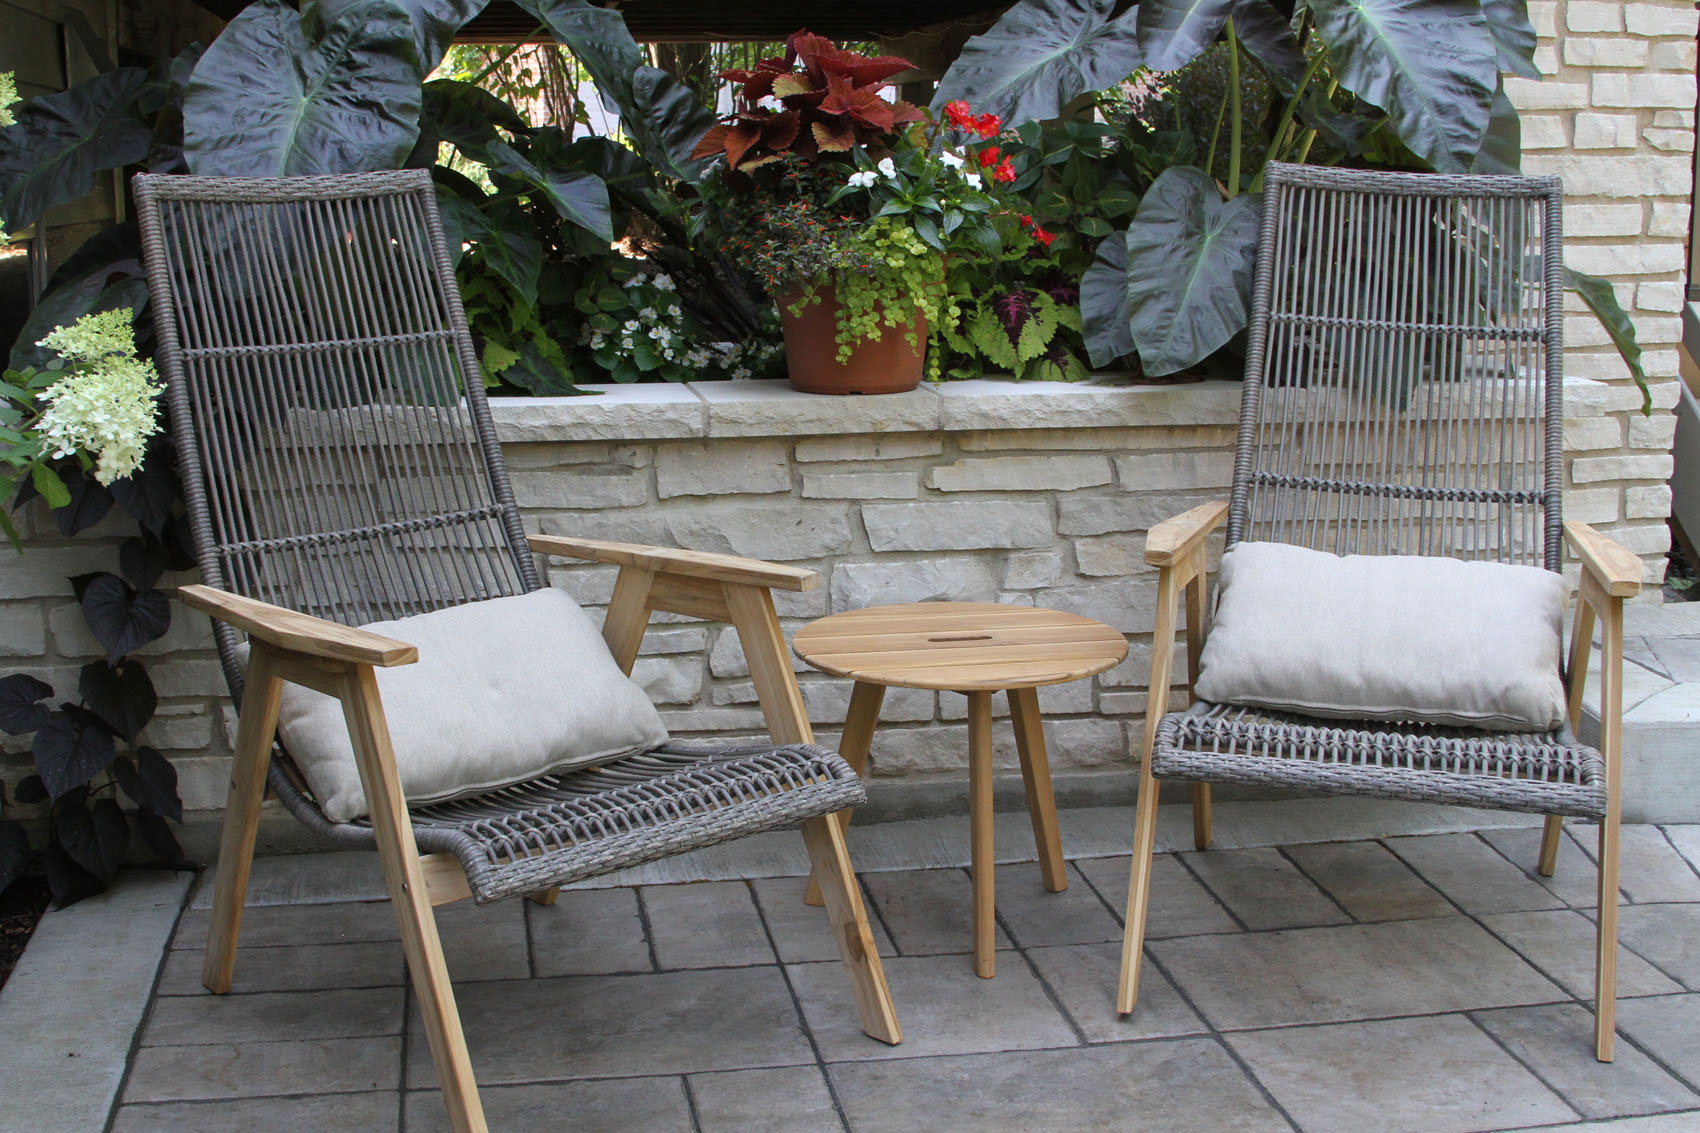 teak wicker furniture collection from outdoor interiors accent table with handle shown basket loungers storage patio lounging tall farmhouse target end tables coffee nate berkus